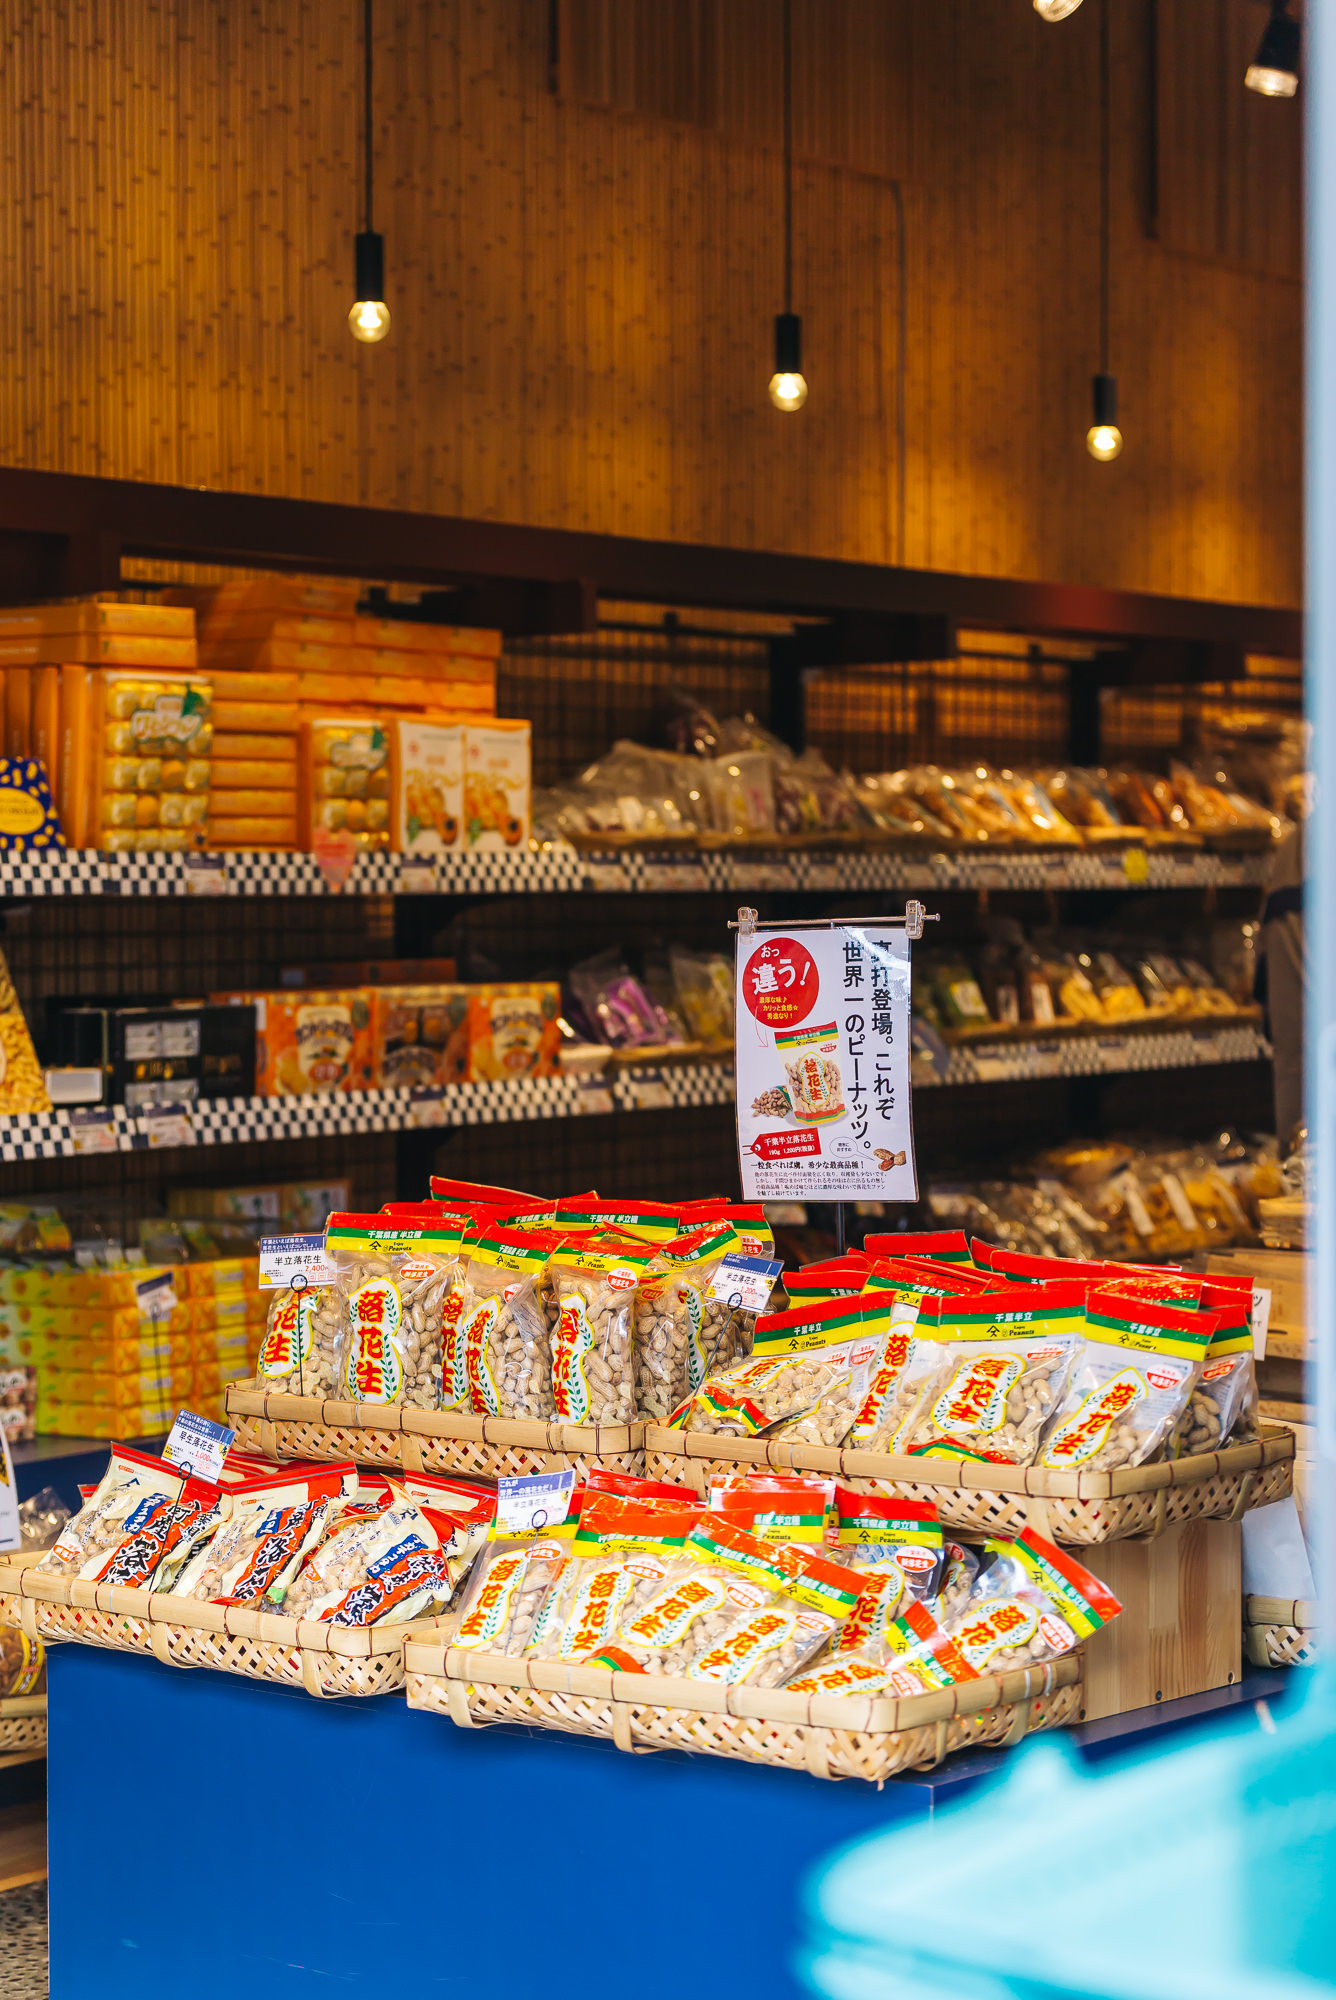 NARITA IS IN CHIBA PREFECTURE AND CHIBA IS THE LARGEST PRODUCER OF PEANUTS IN JAPAN. THEY ARE DELICIOUS!